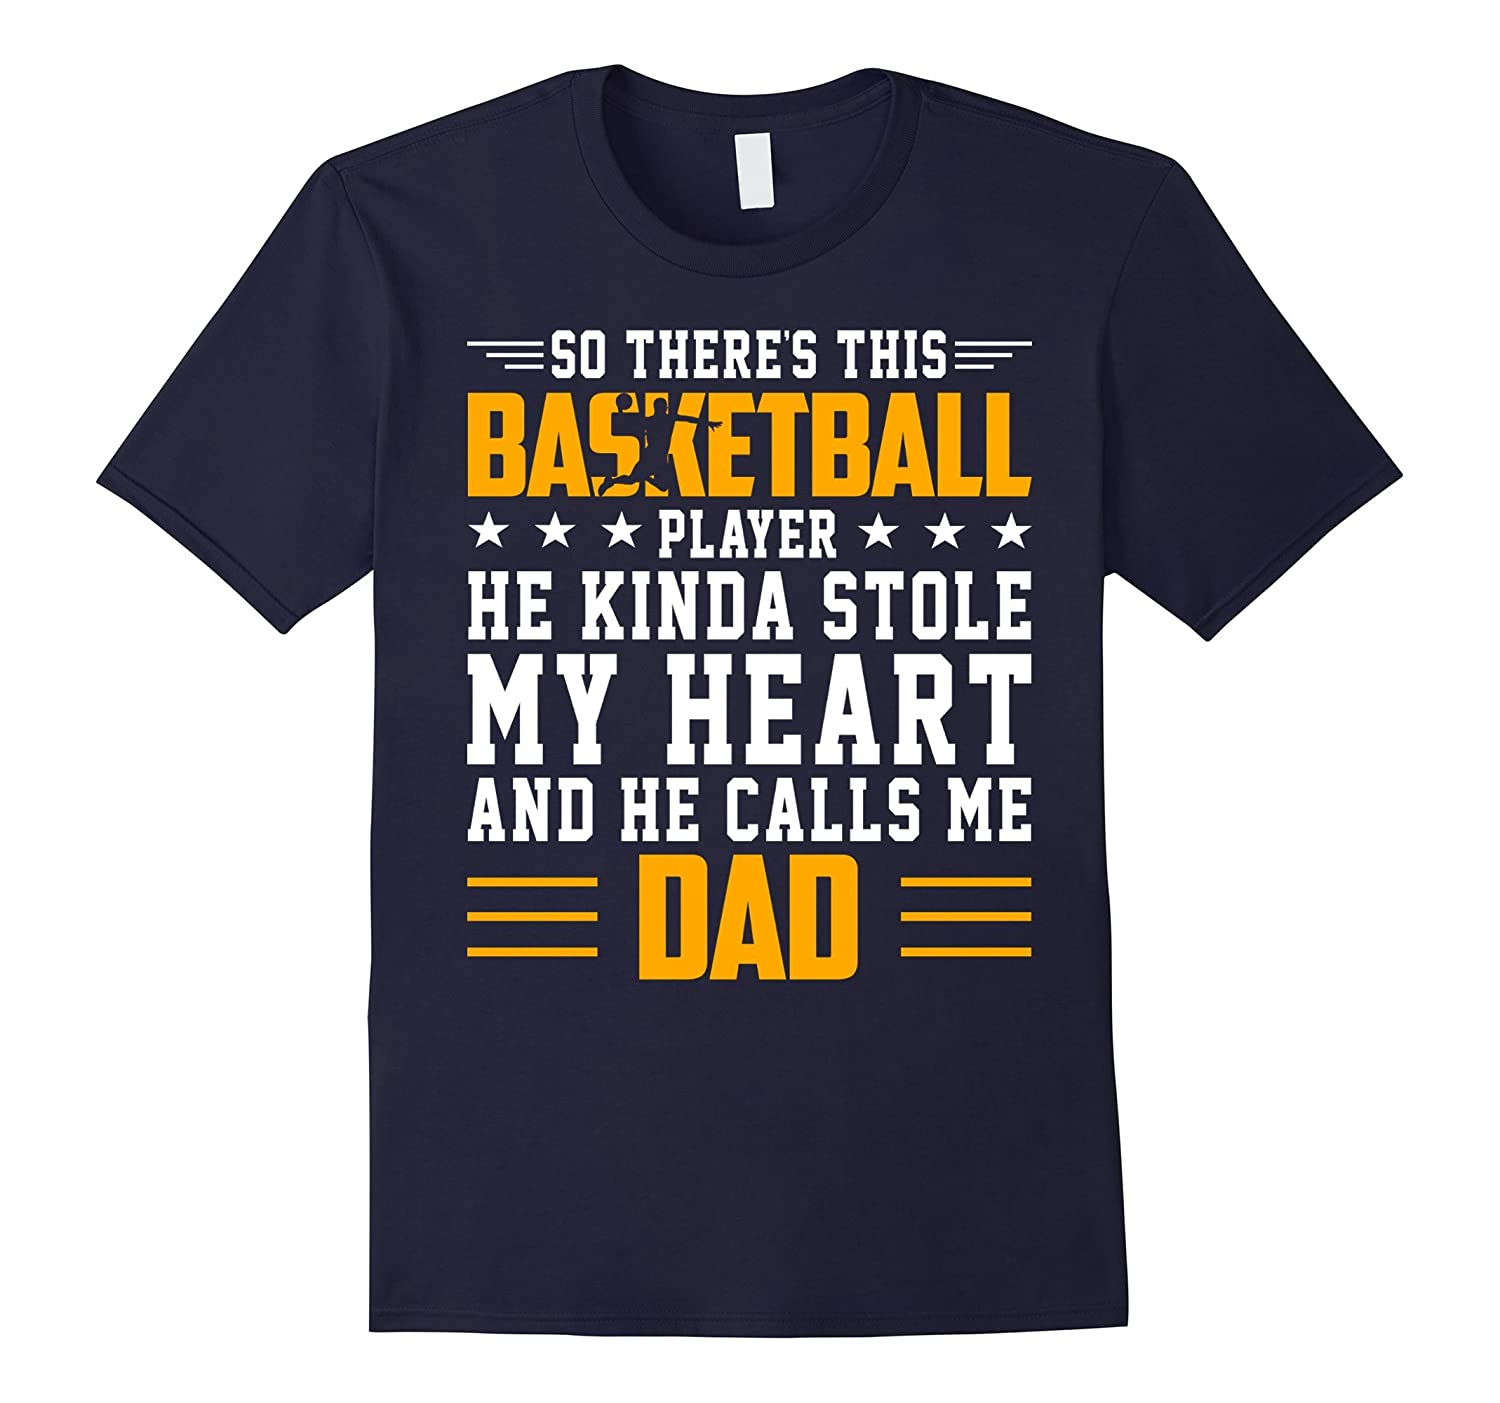 Basketball Player Stole My Heart Calls Me Dad Father Shirt